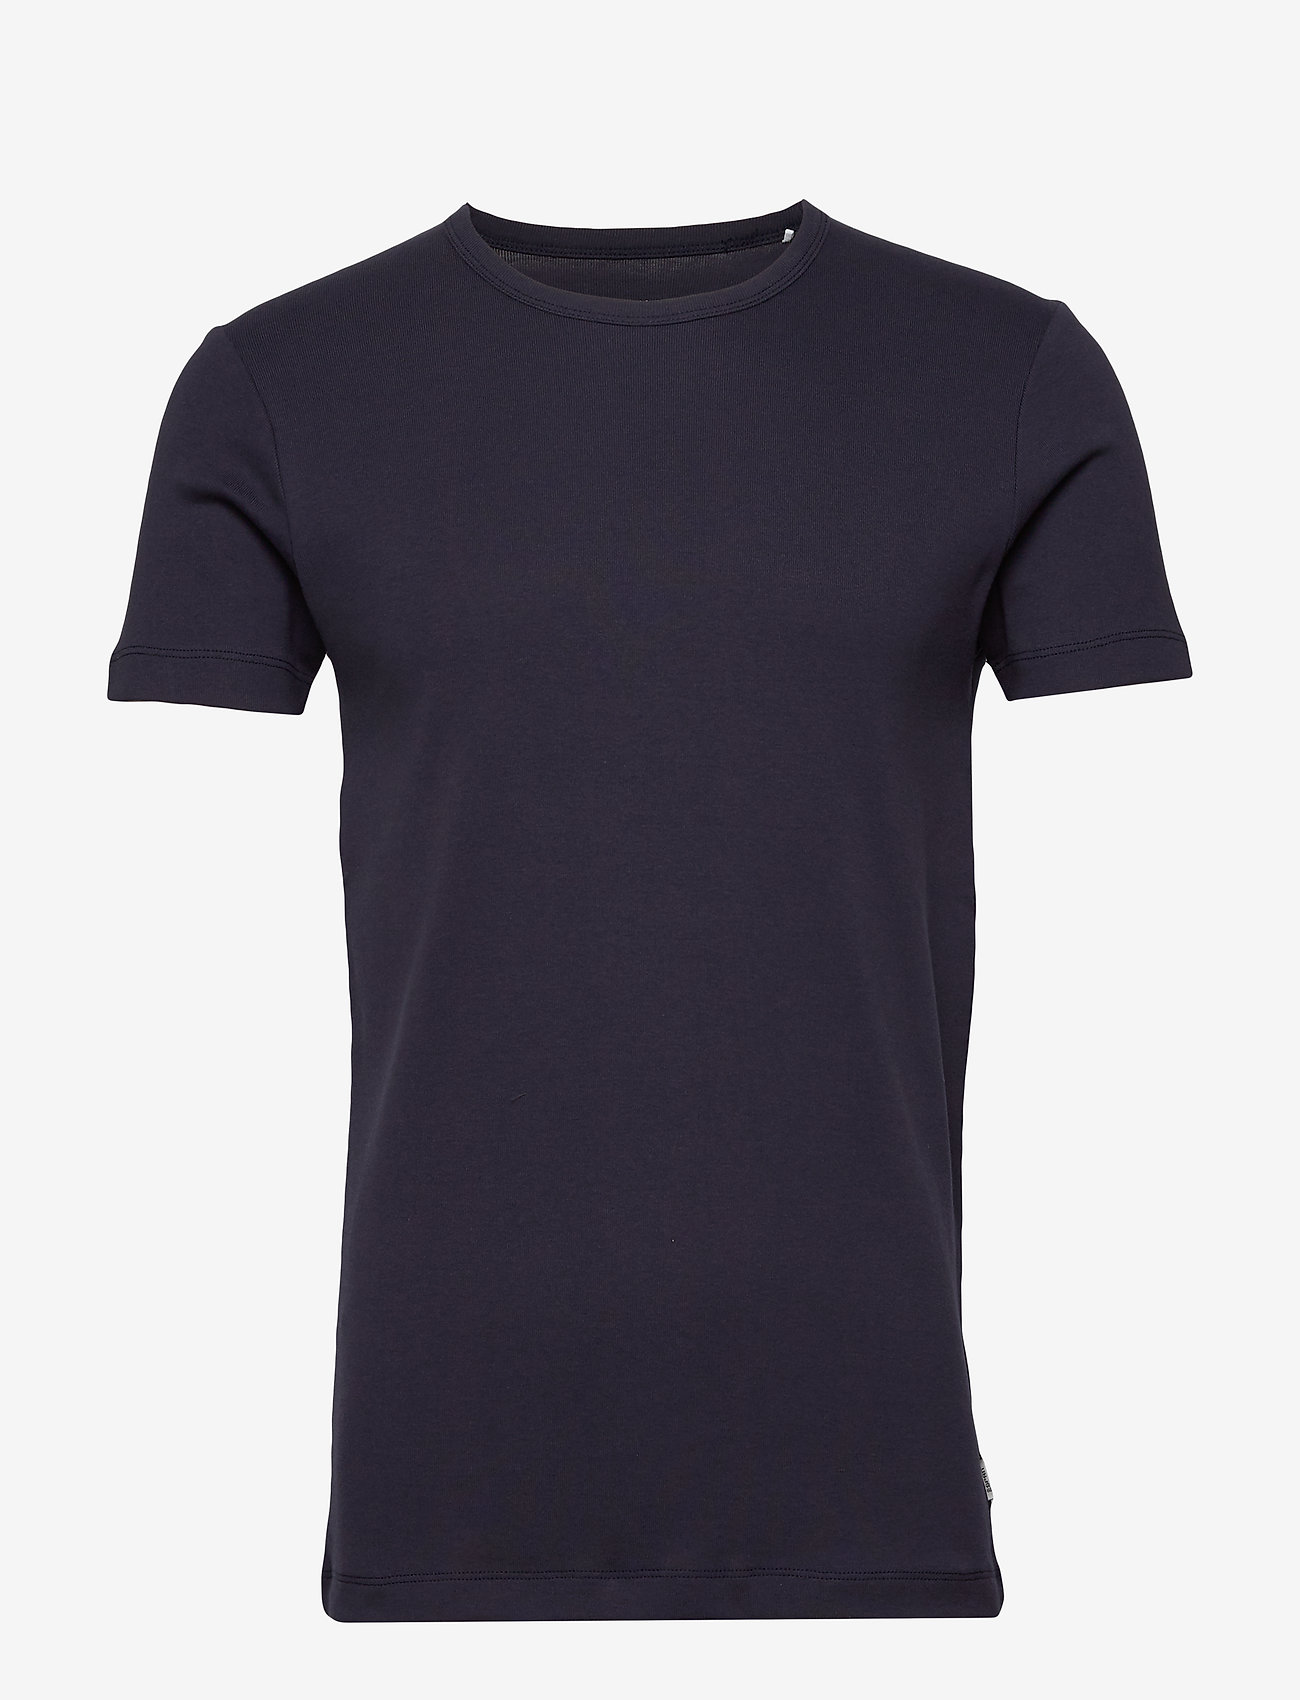 Esprit Casual - T-Shirts - basic t-shirts - navy - 0